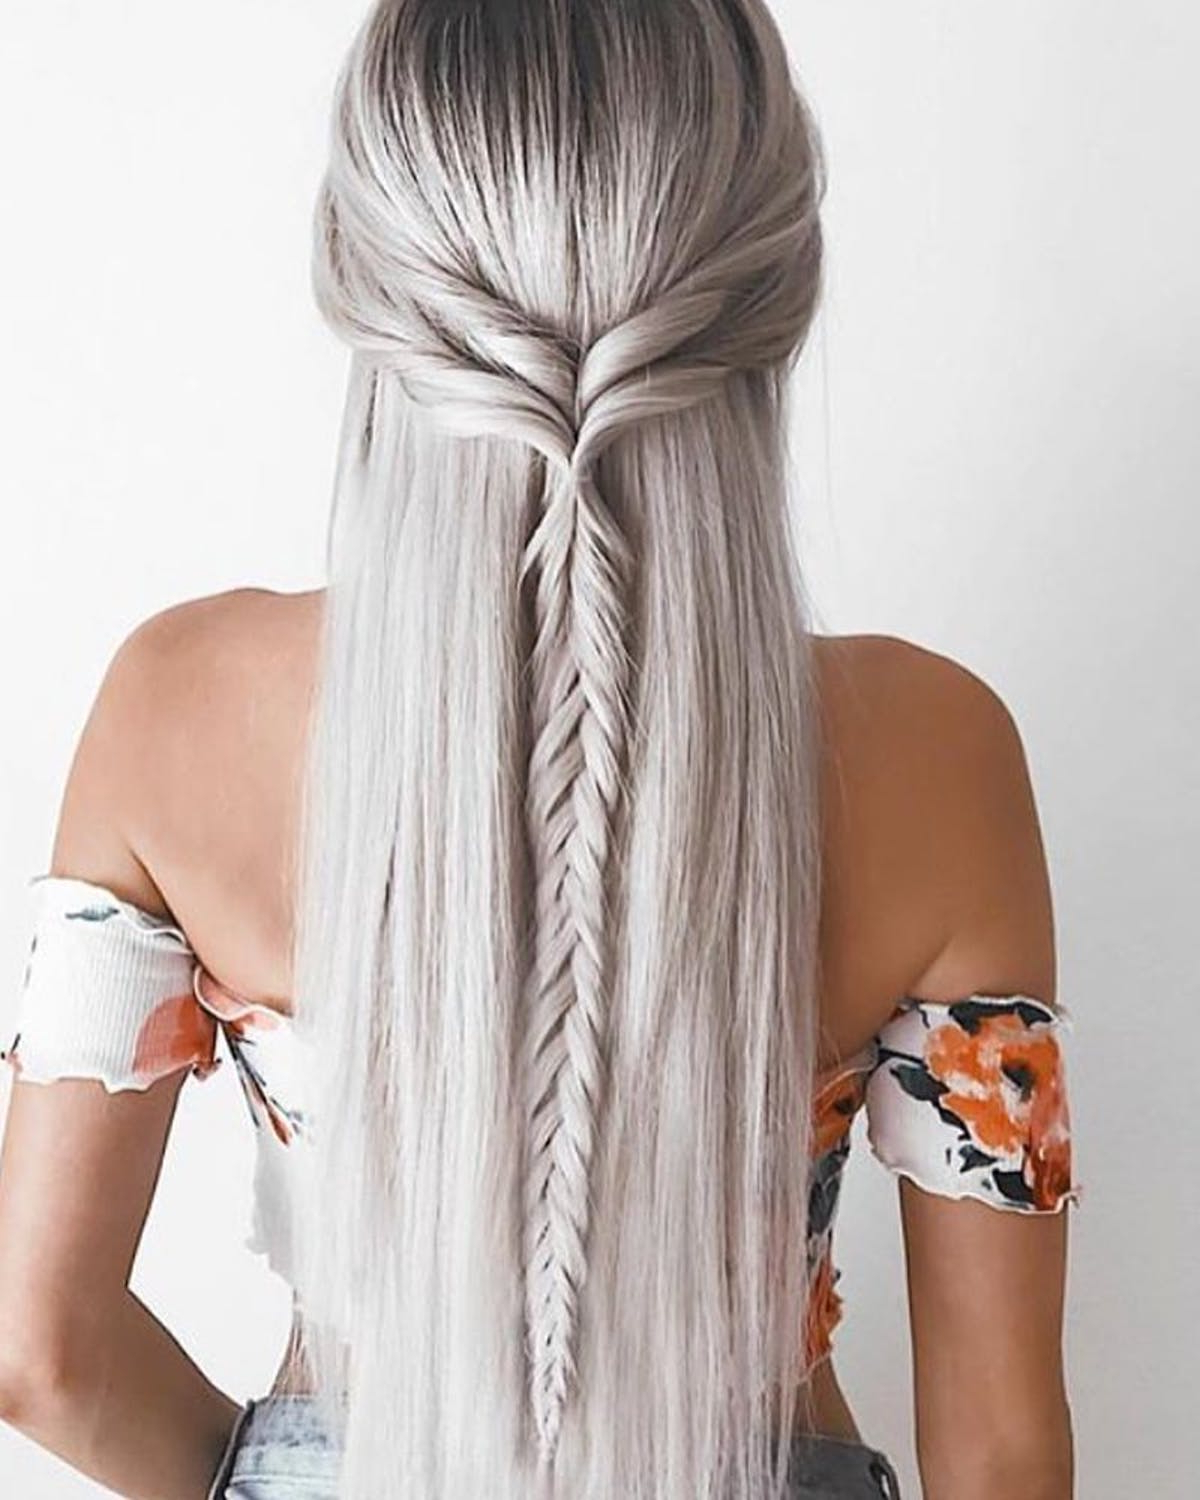 30 Long Haircuts & Hairstyles For Women To Look Gorgeous Within Well Liked Long Blonde Braid Hairstyles (View 10 of 20)